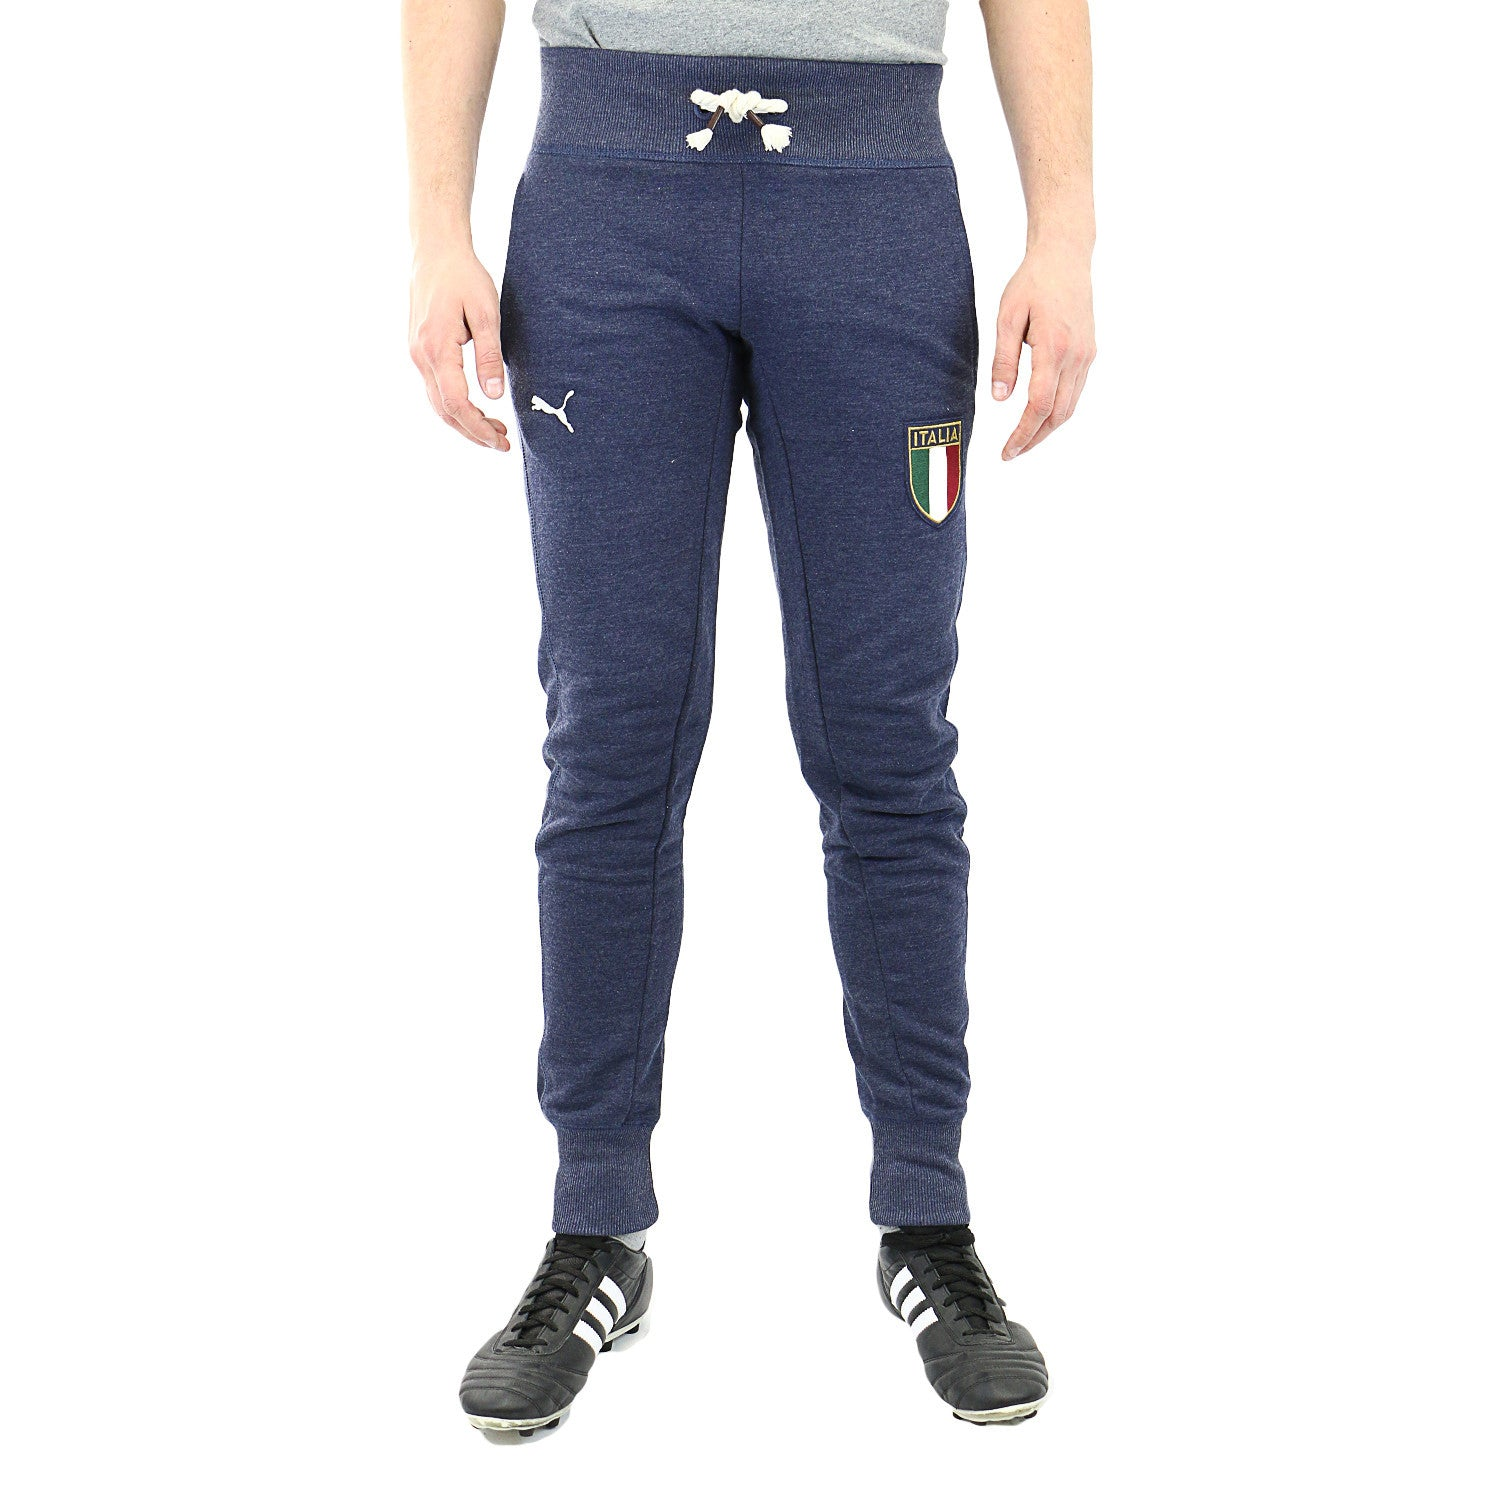 37619dc2e92c Puma FIGC Italia Azzurri Cuffed Terry Sweat Pants - Pea Coat - Mens -  Shoplifestyle